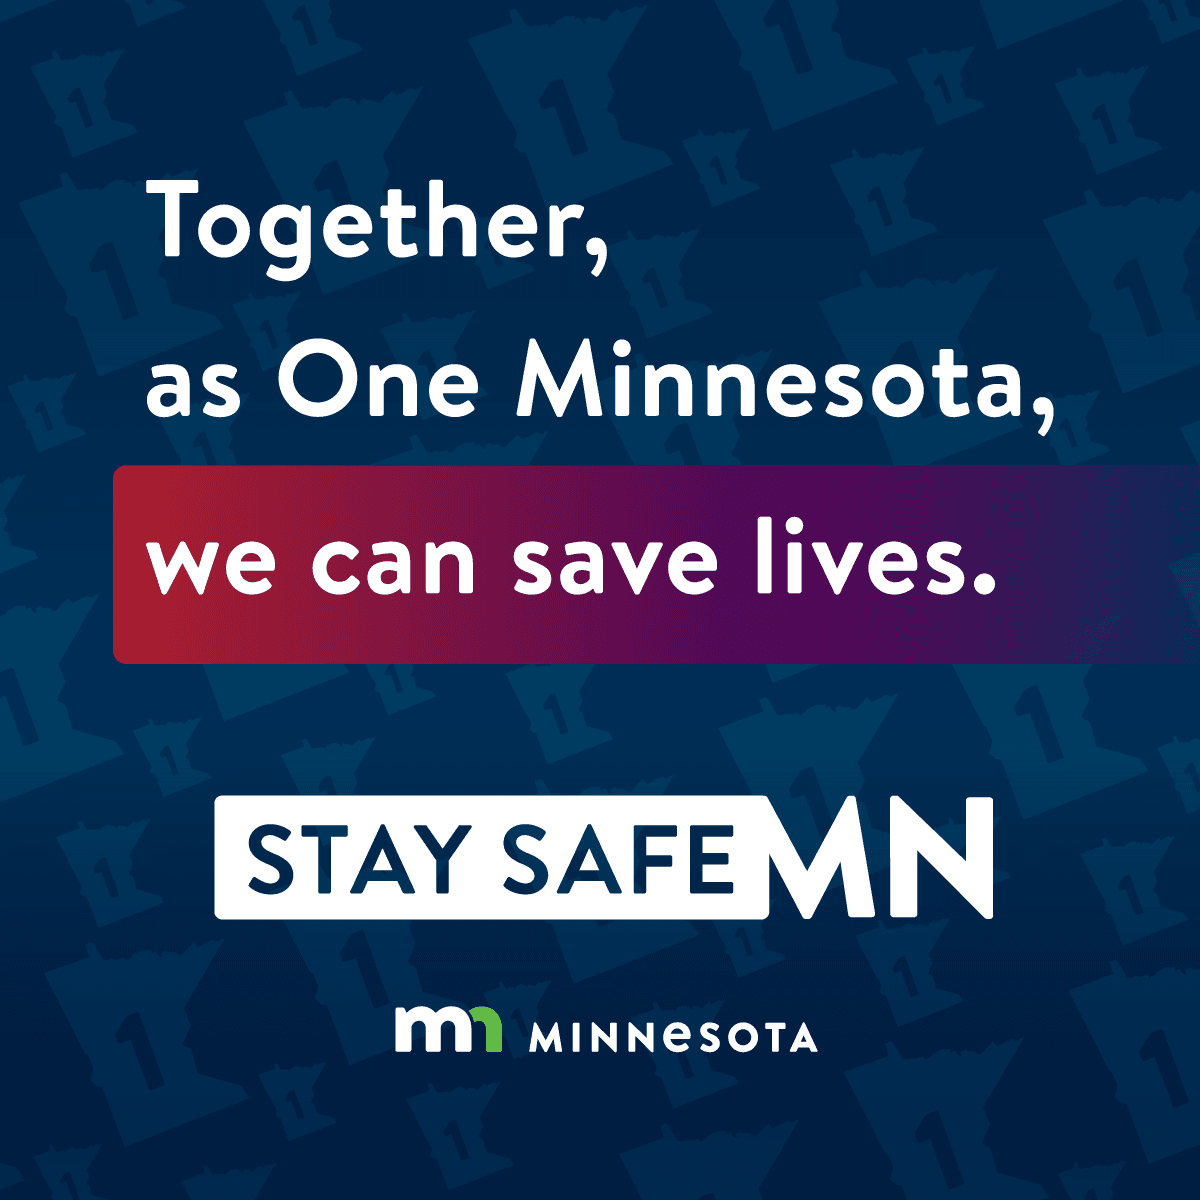 Together, as One Minnesota, we can save lives. Stay safe Minnesota.